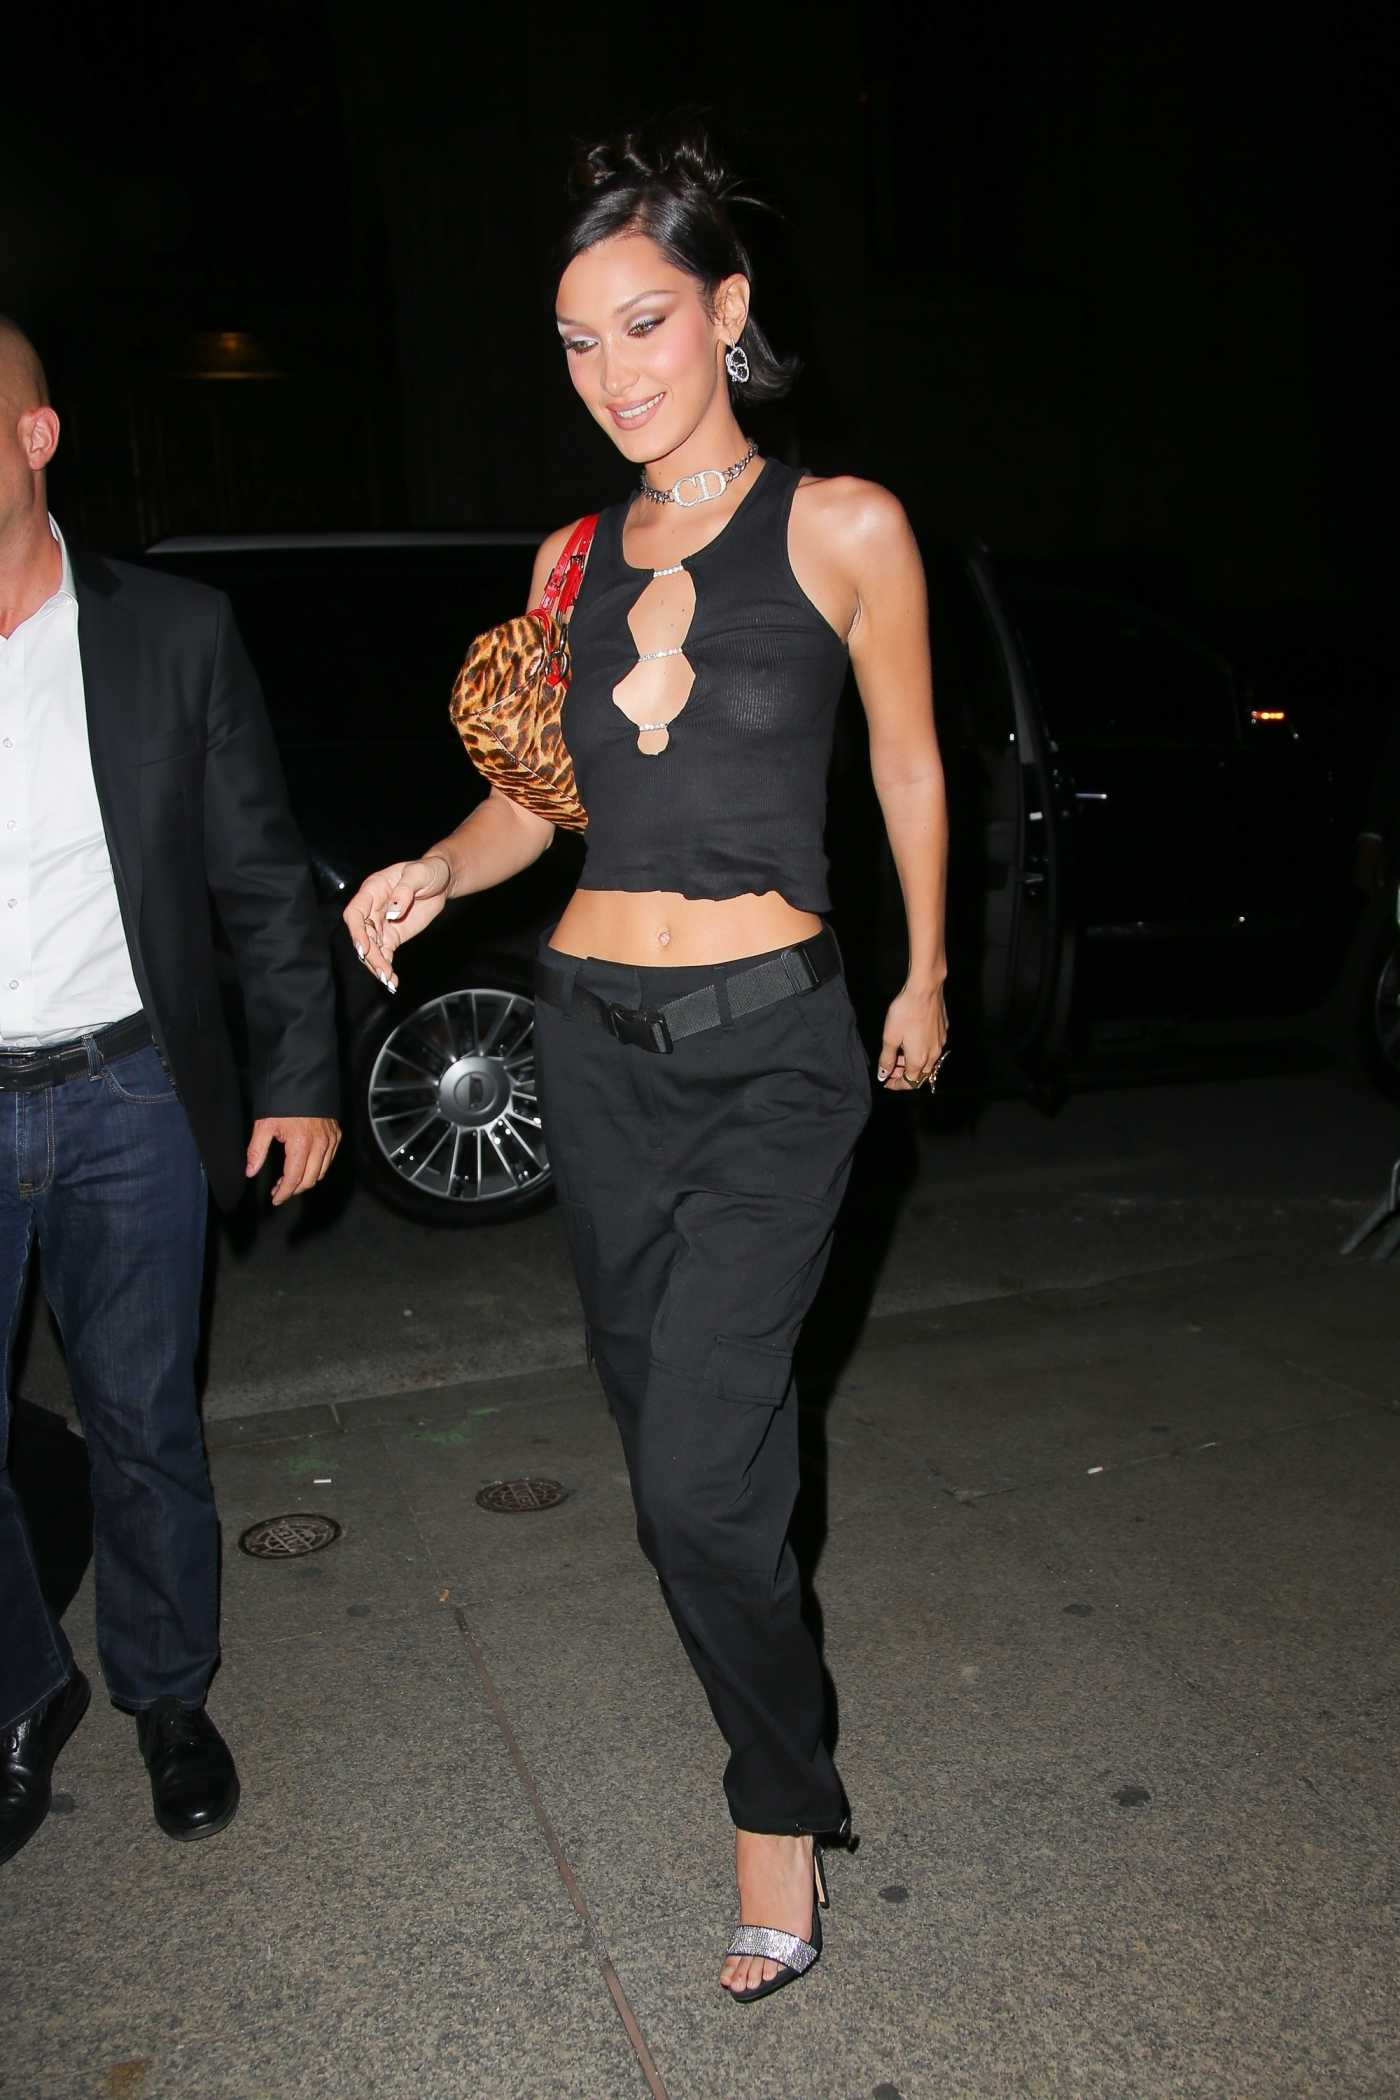 Bella Hadid in a Black Blouse Arrives at L'Avenue at Saks in New York City 10/10/2019